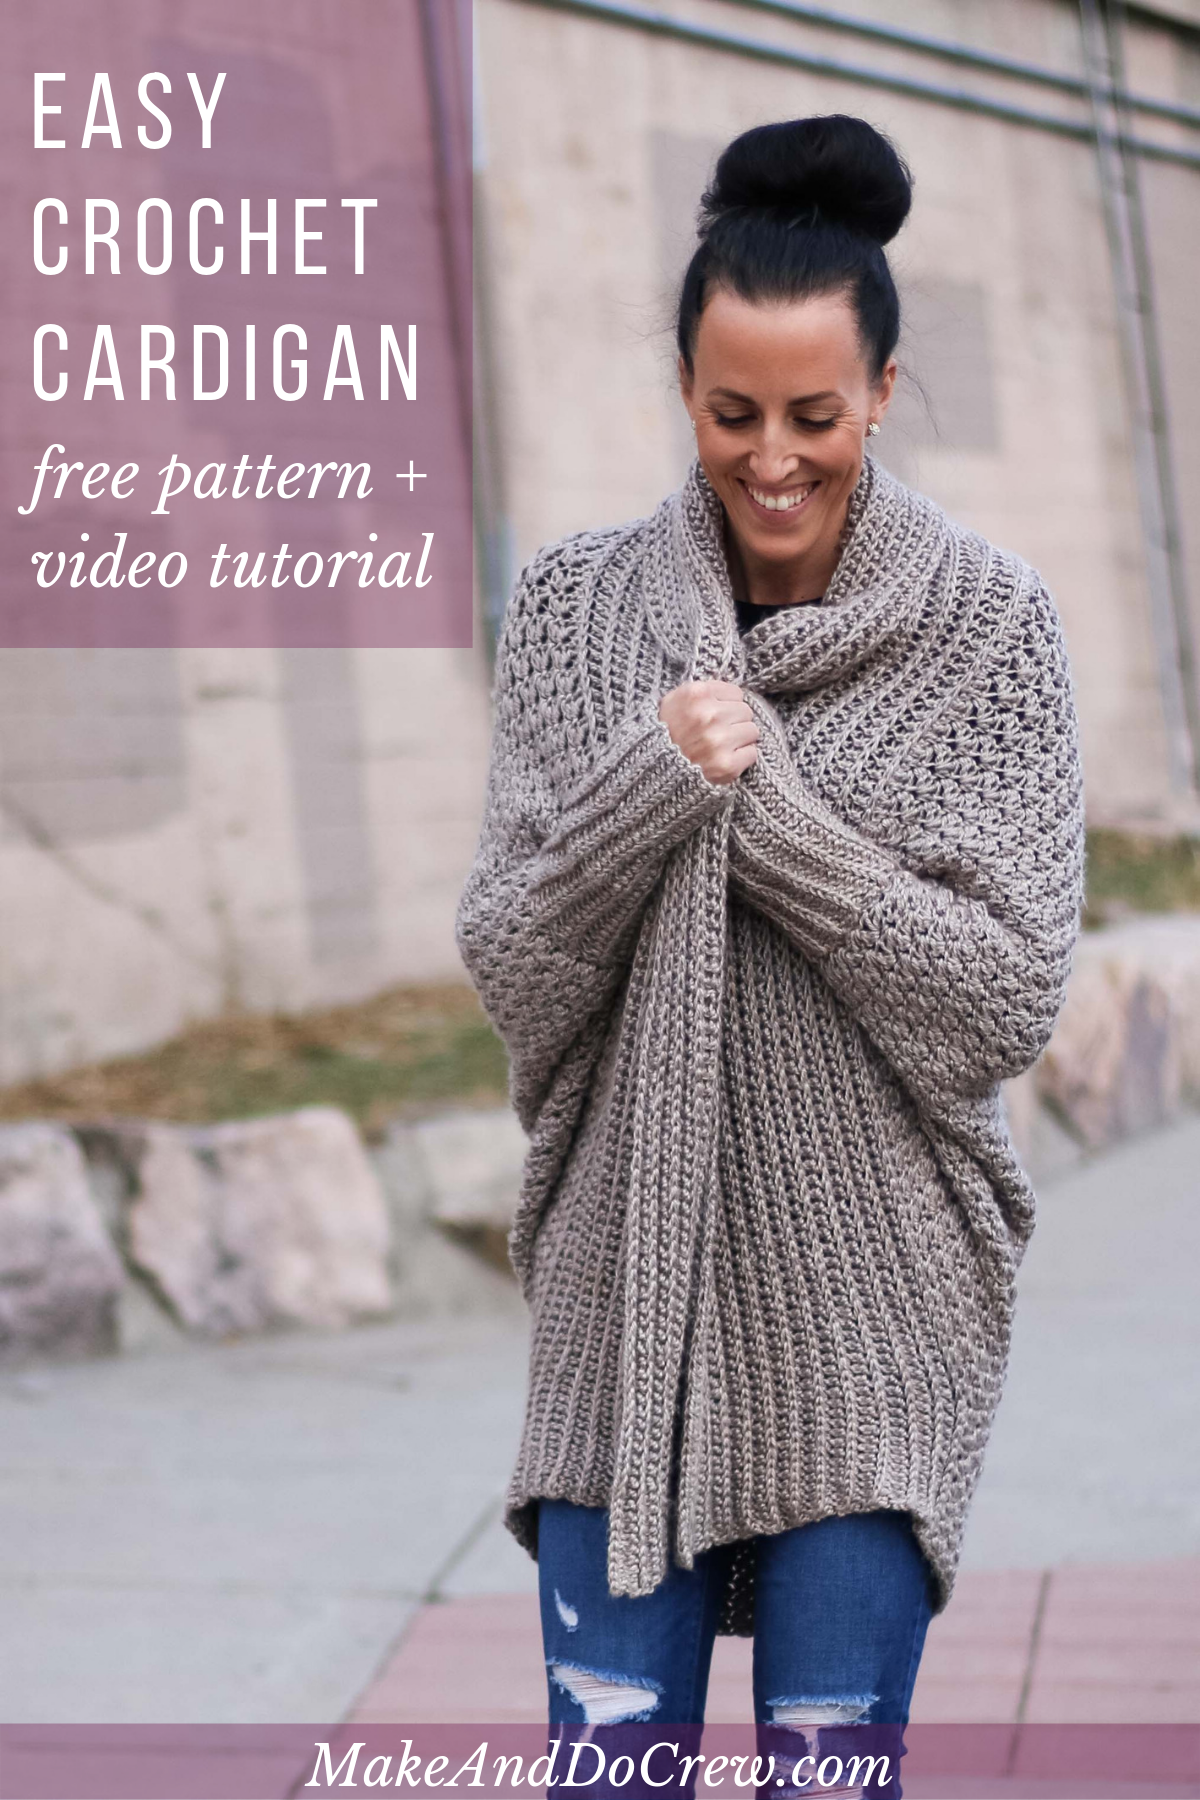 Learn How to Make an Easy Crochet Cardigan – Free Pattern + Video Tutorial